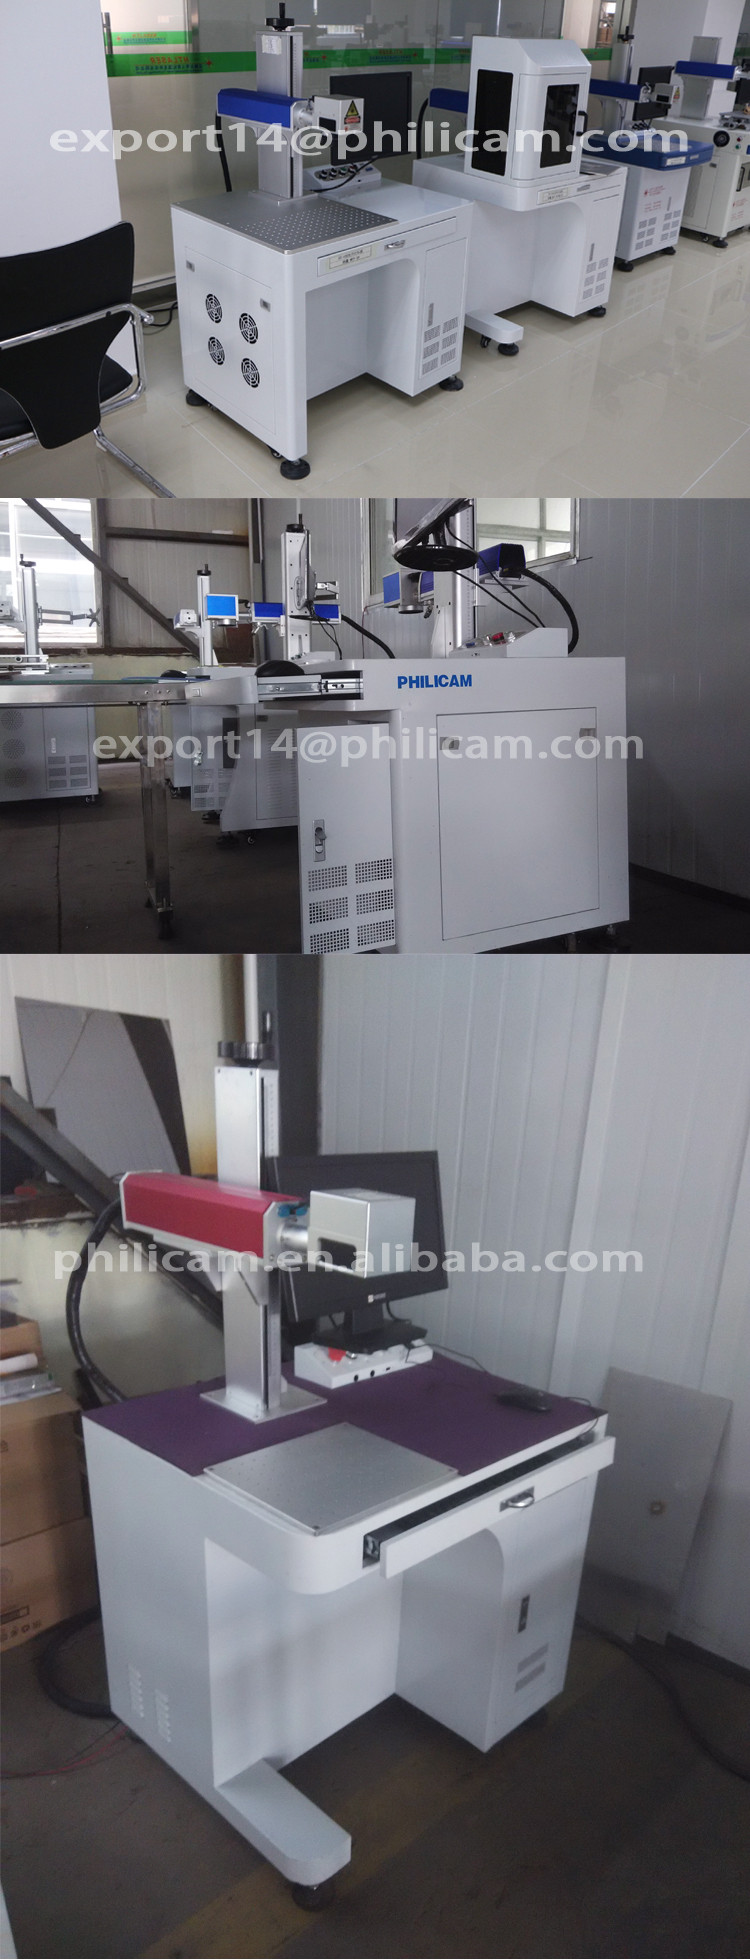 Jinan high quality fiber 20w metal and non-metal 3d printer laser marking machine for sale